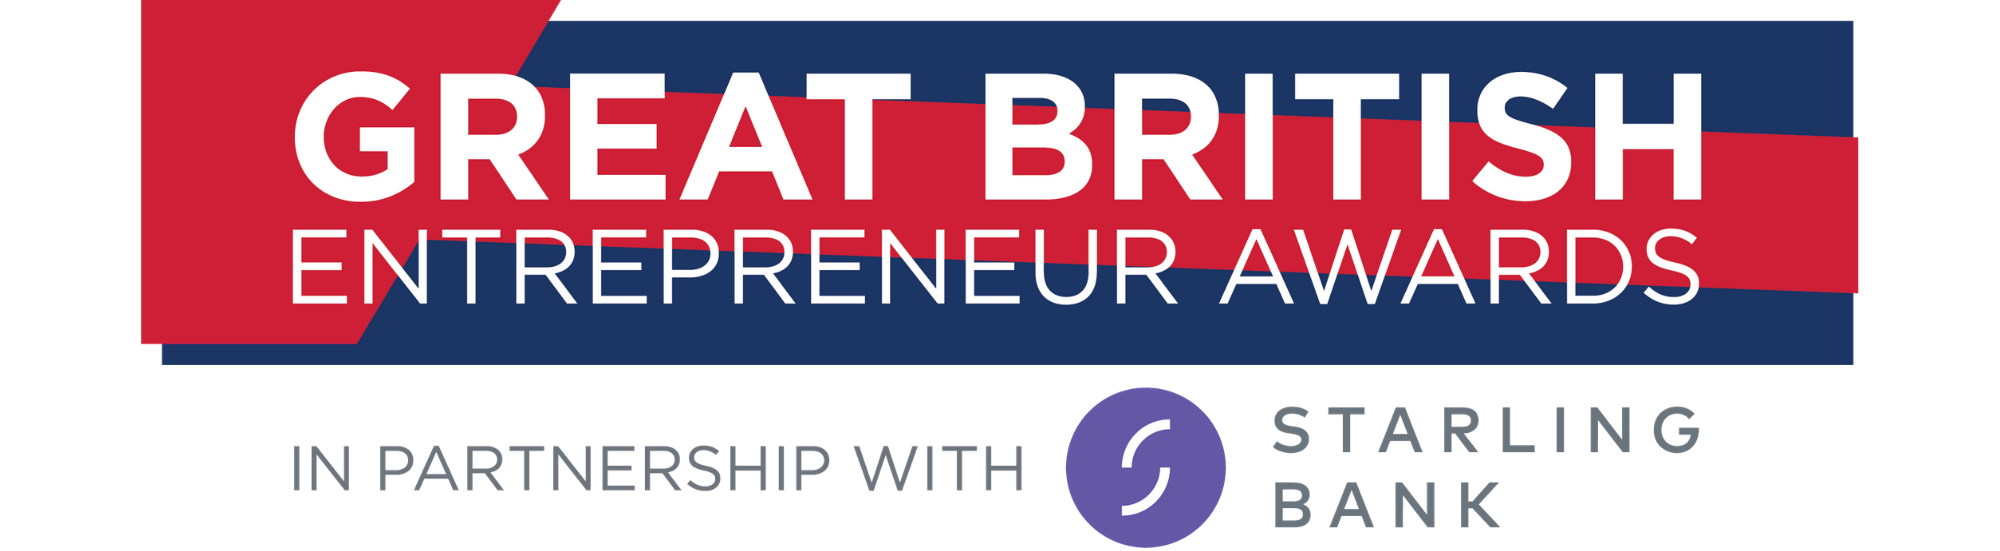 The Great British Entrepreneur Awards 2021 are now open